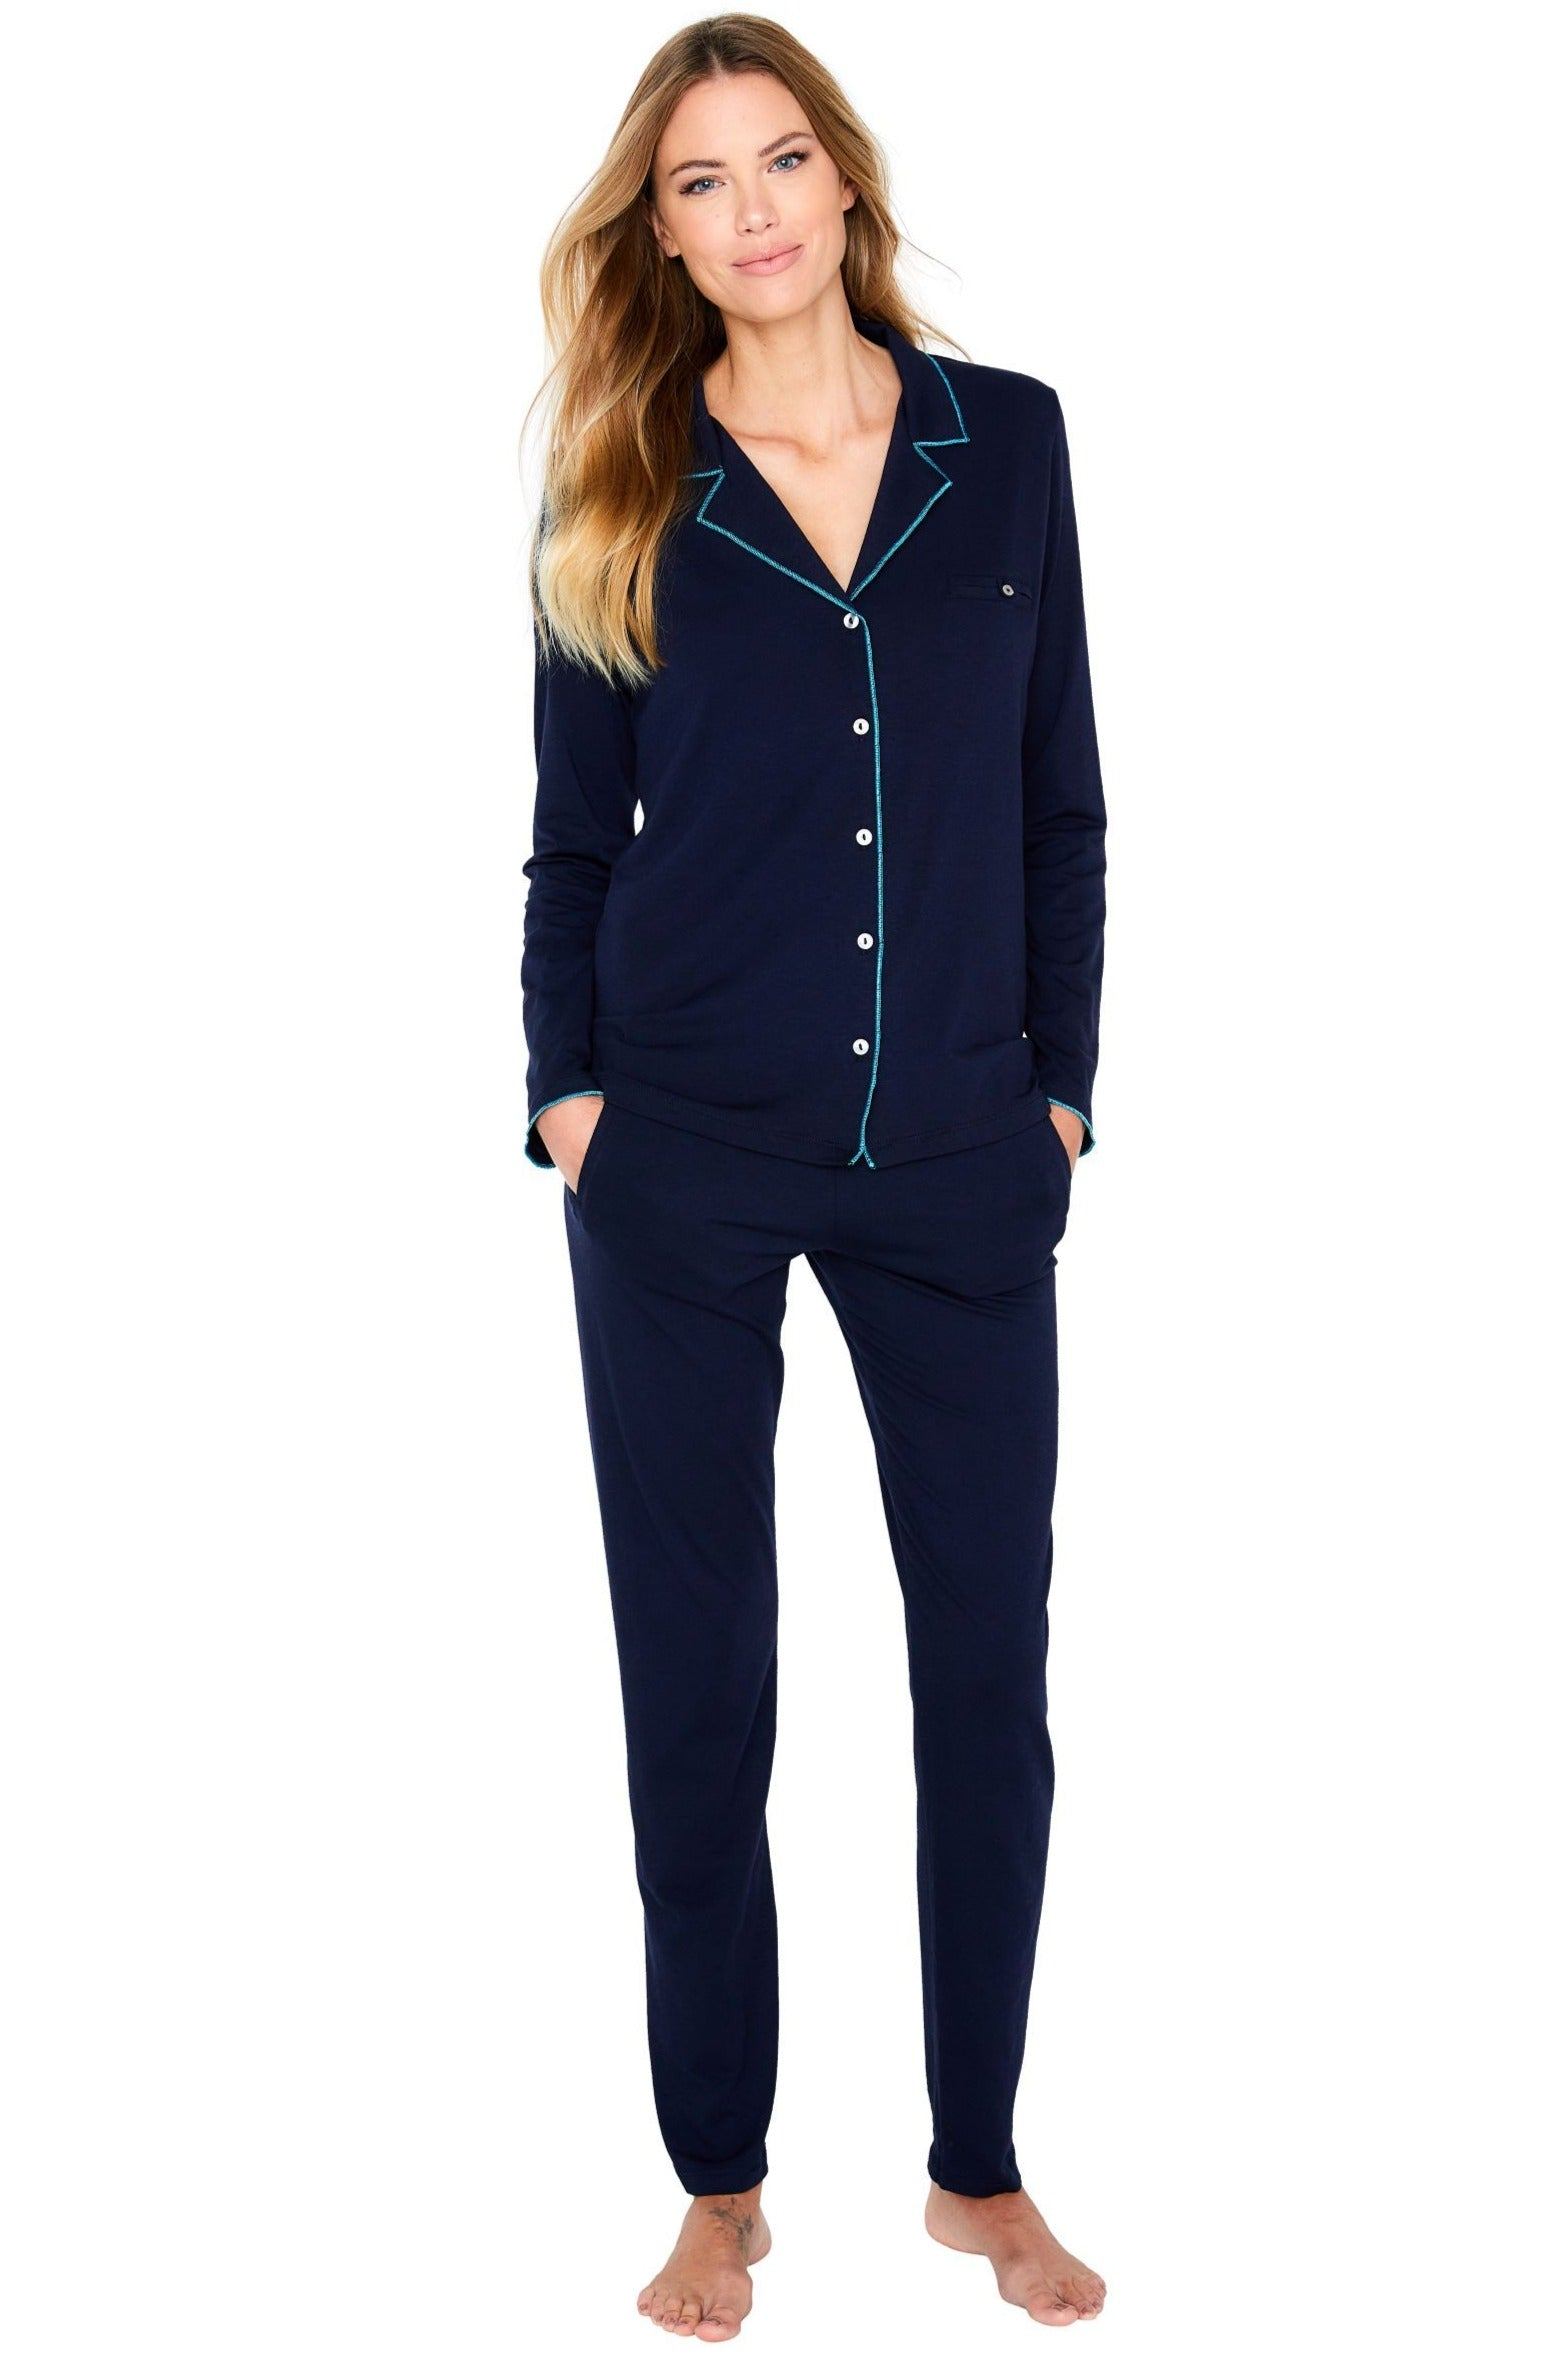 Brenda Long Sleeve PJ Set